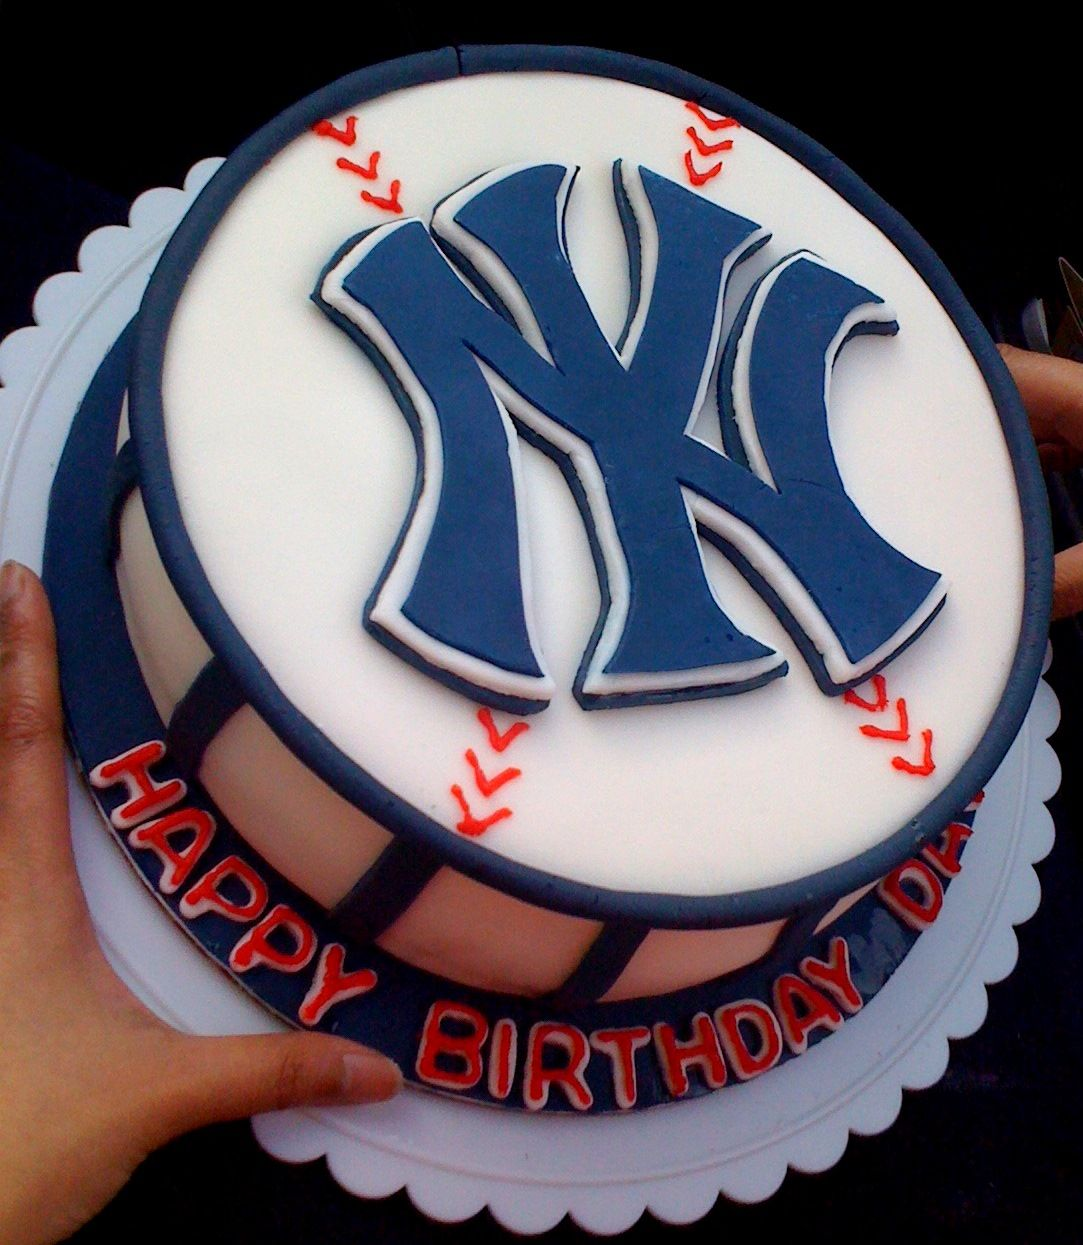 Sprinkle Sprinkle Little Star Yankee Cake Yankees Birthday Birthday Cake Kids